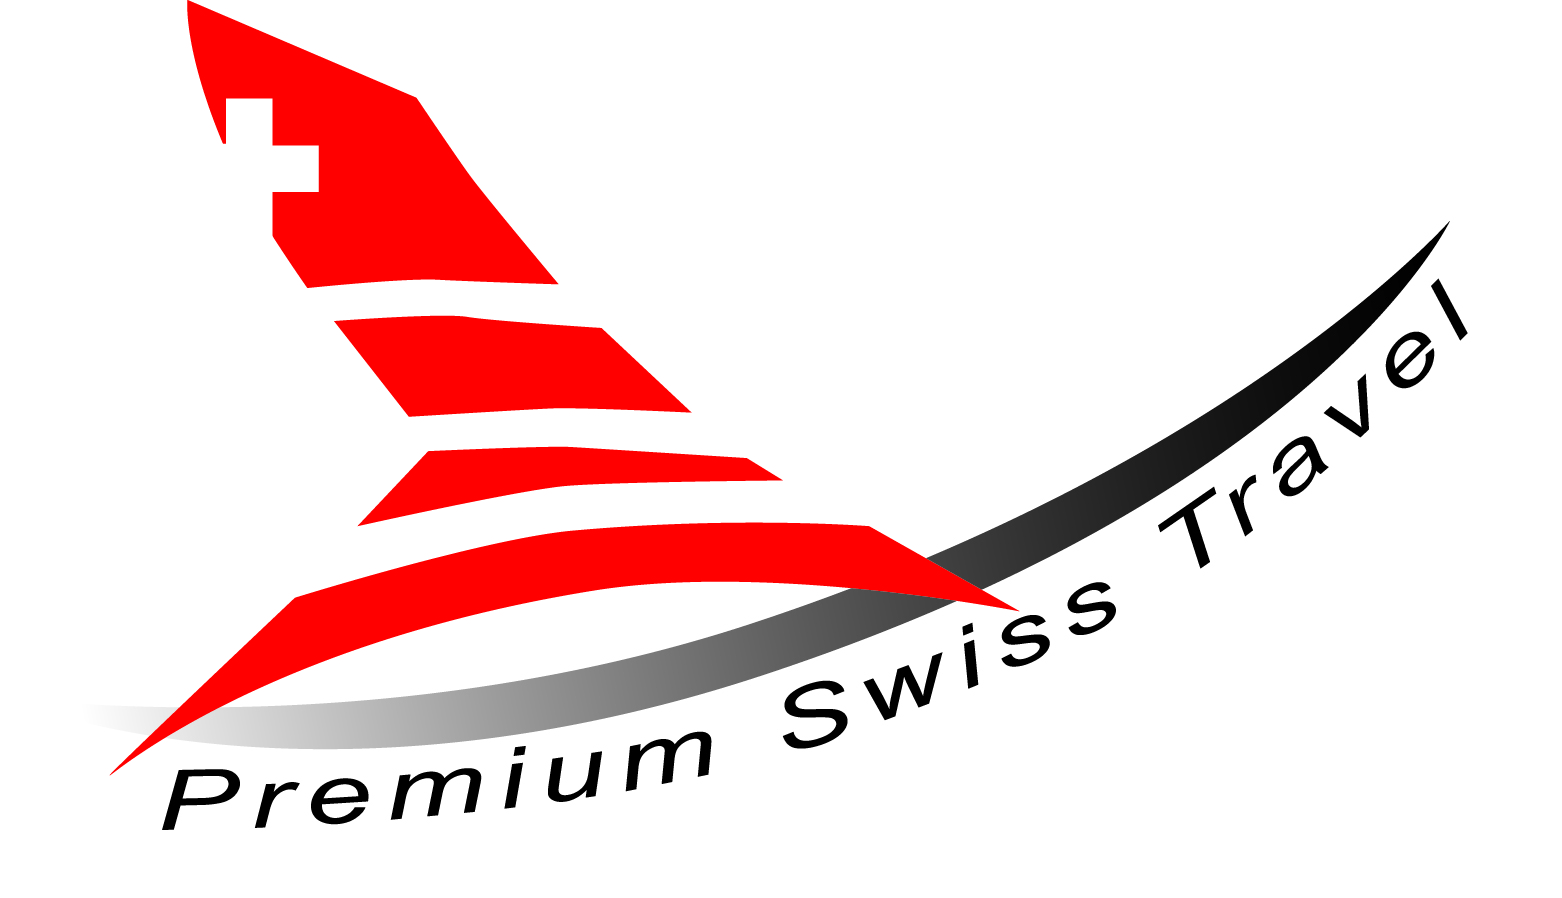 Premium Swiss Travel | Seasonal rates Archives - Premium Swiss Travel